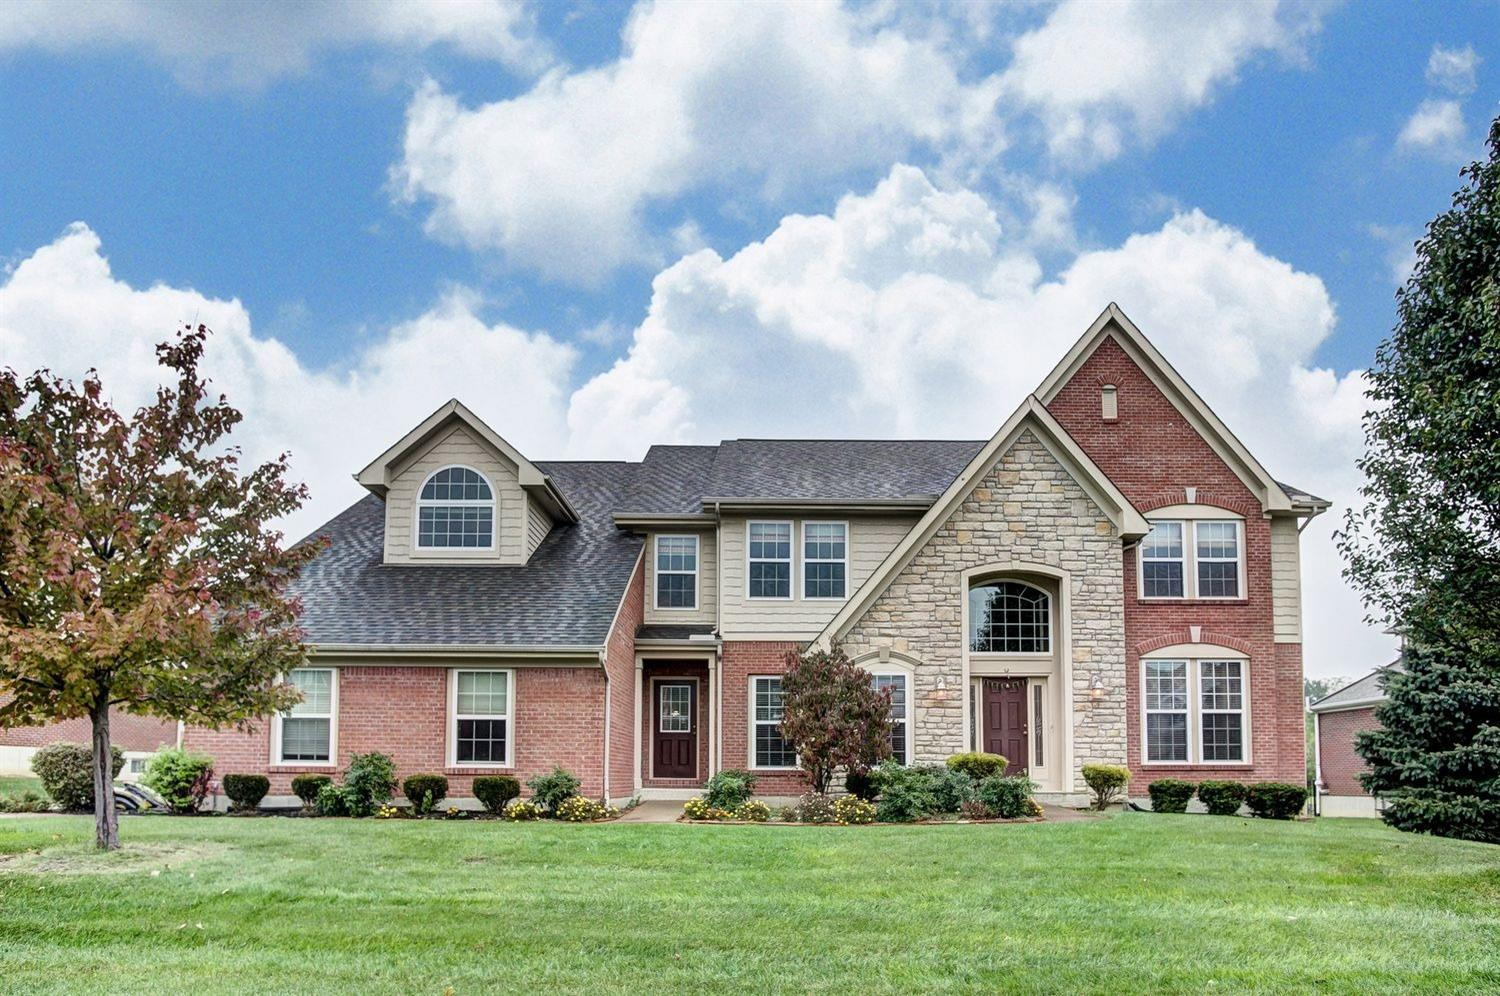 8022 Farm Acre Dr West Chester - East, OH